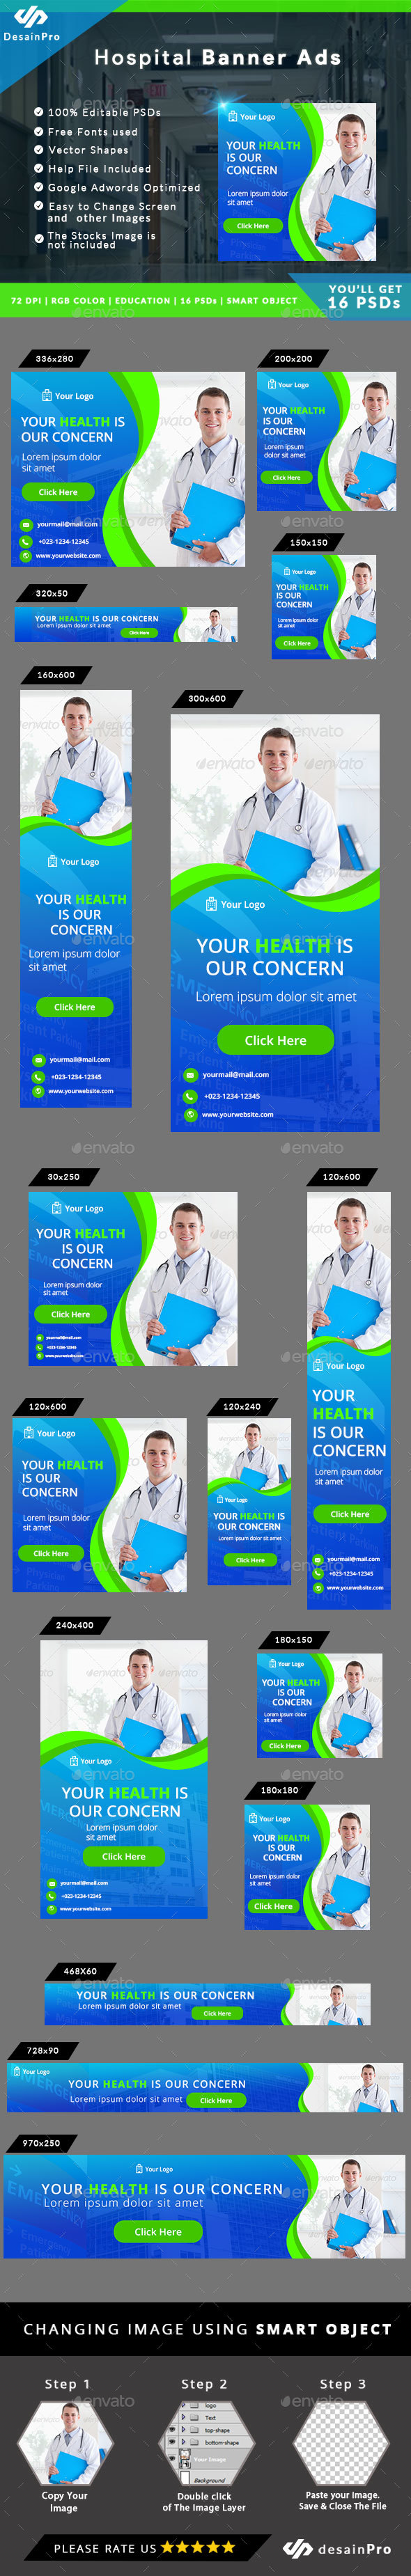 Hospital Banner Ads - AR - Banners & Ads Web Elements